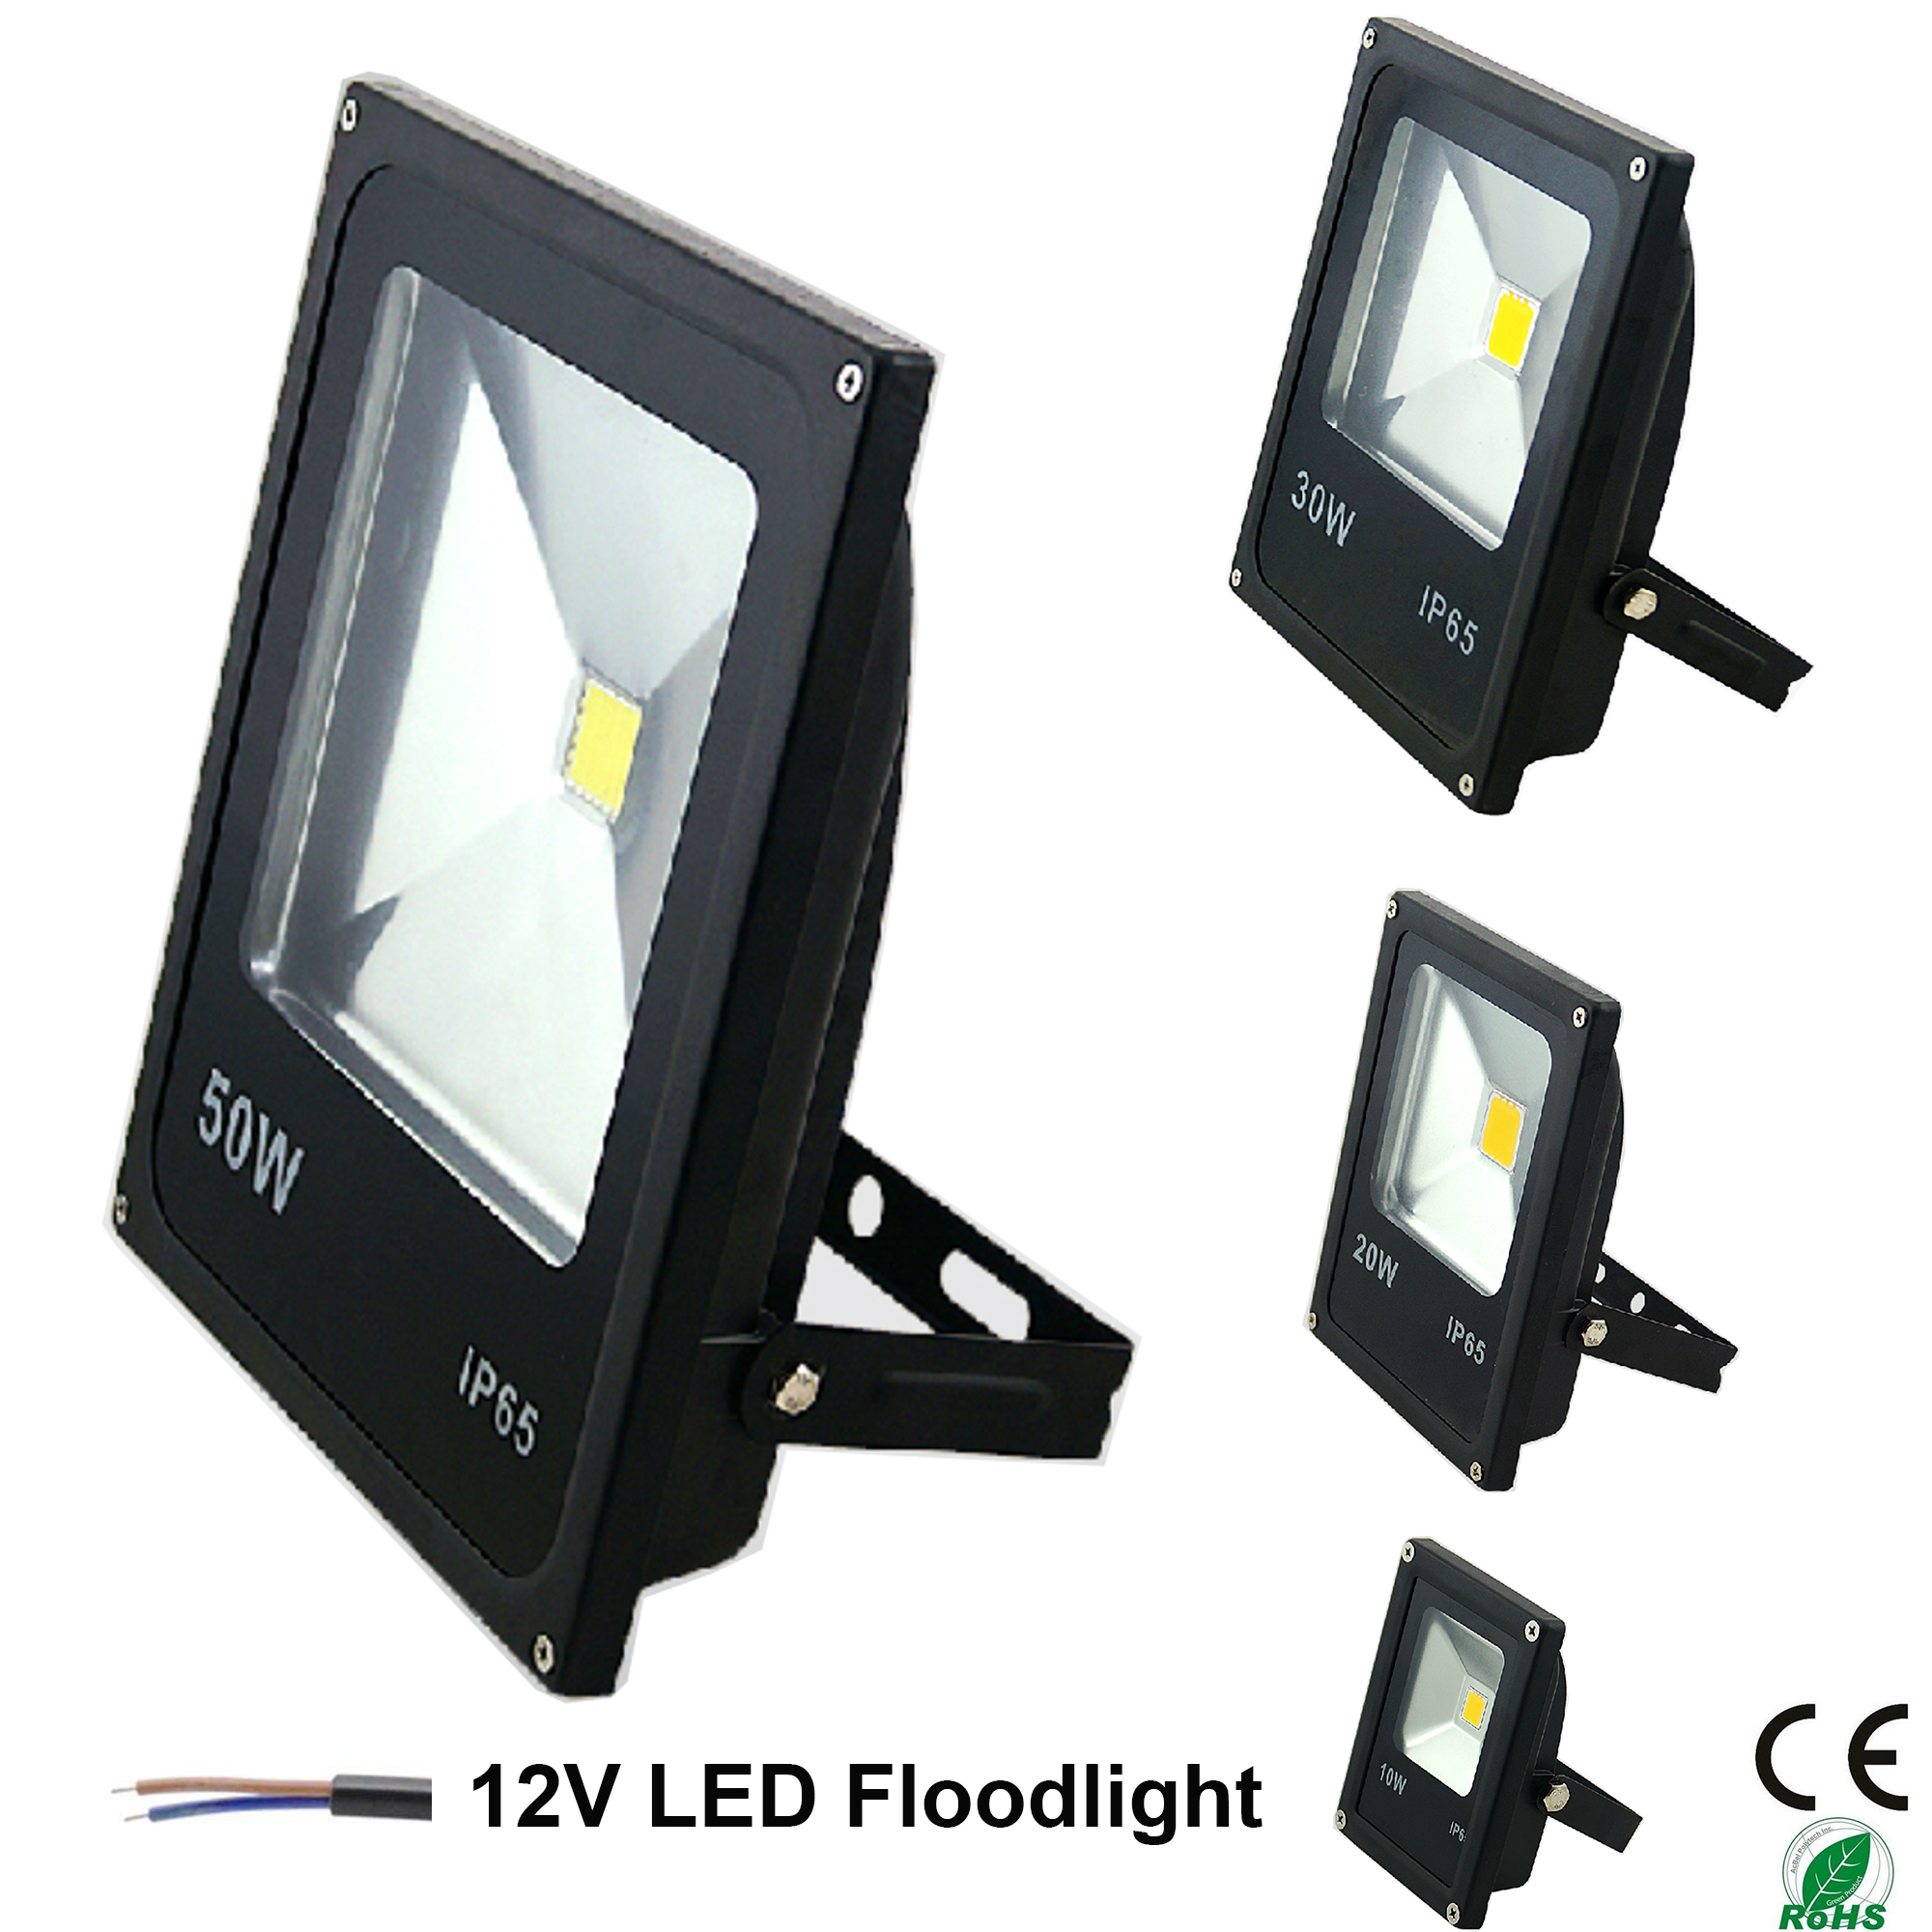 lighting outdoor subcategory light in series exporters and flood pyrotech manufacturer led supplier eco lights